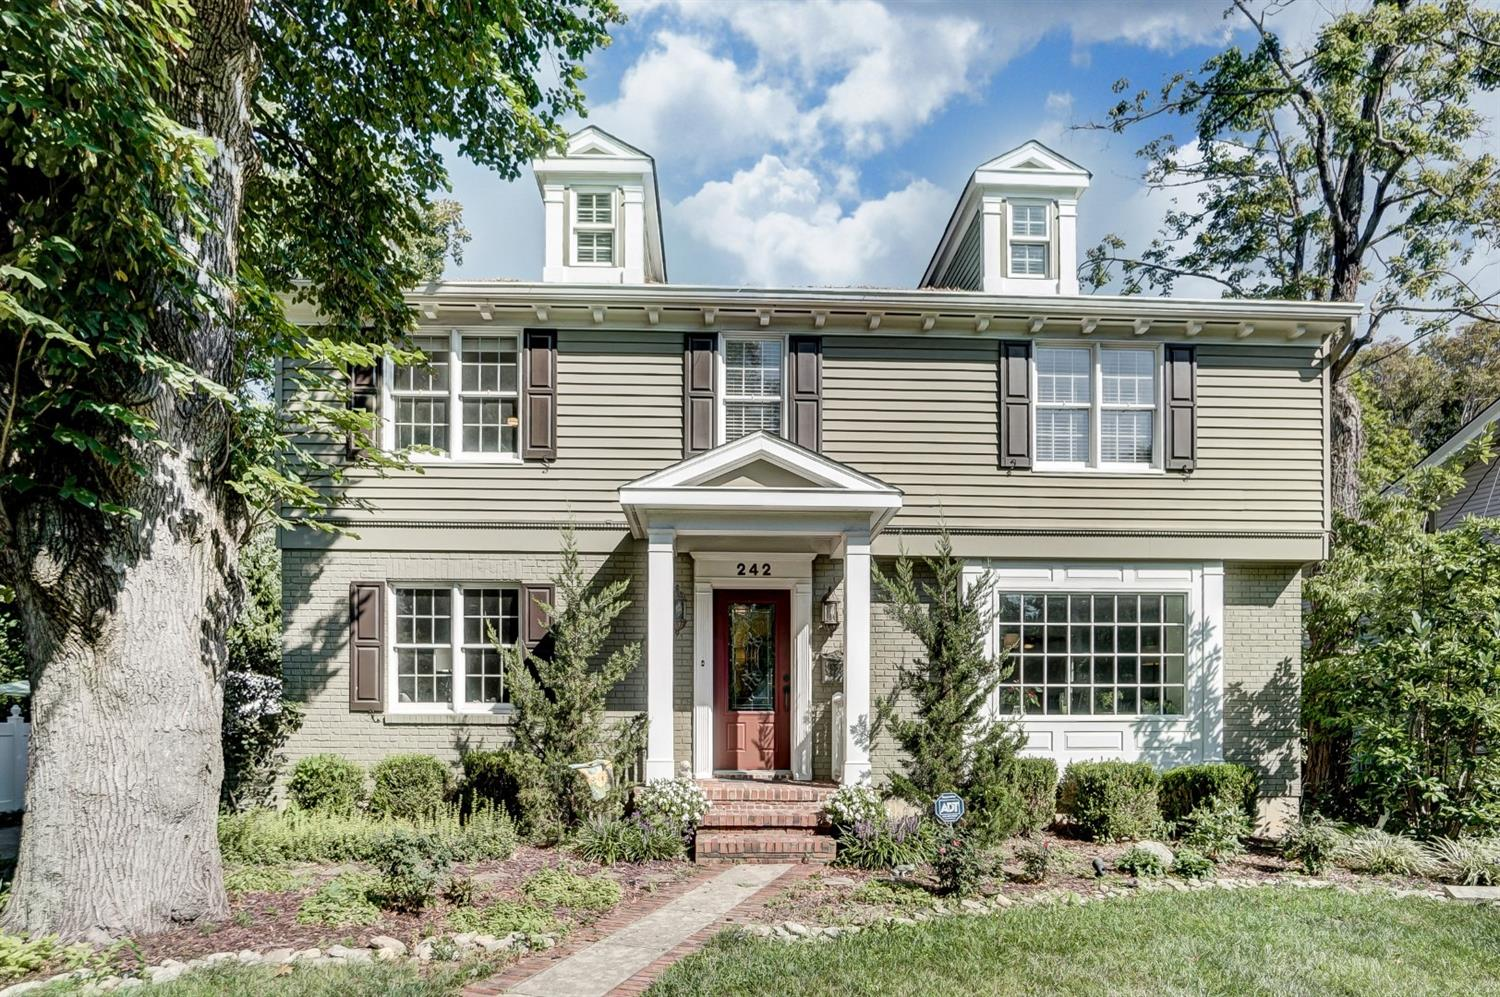 242 Elm Ave Wyoming, OH